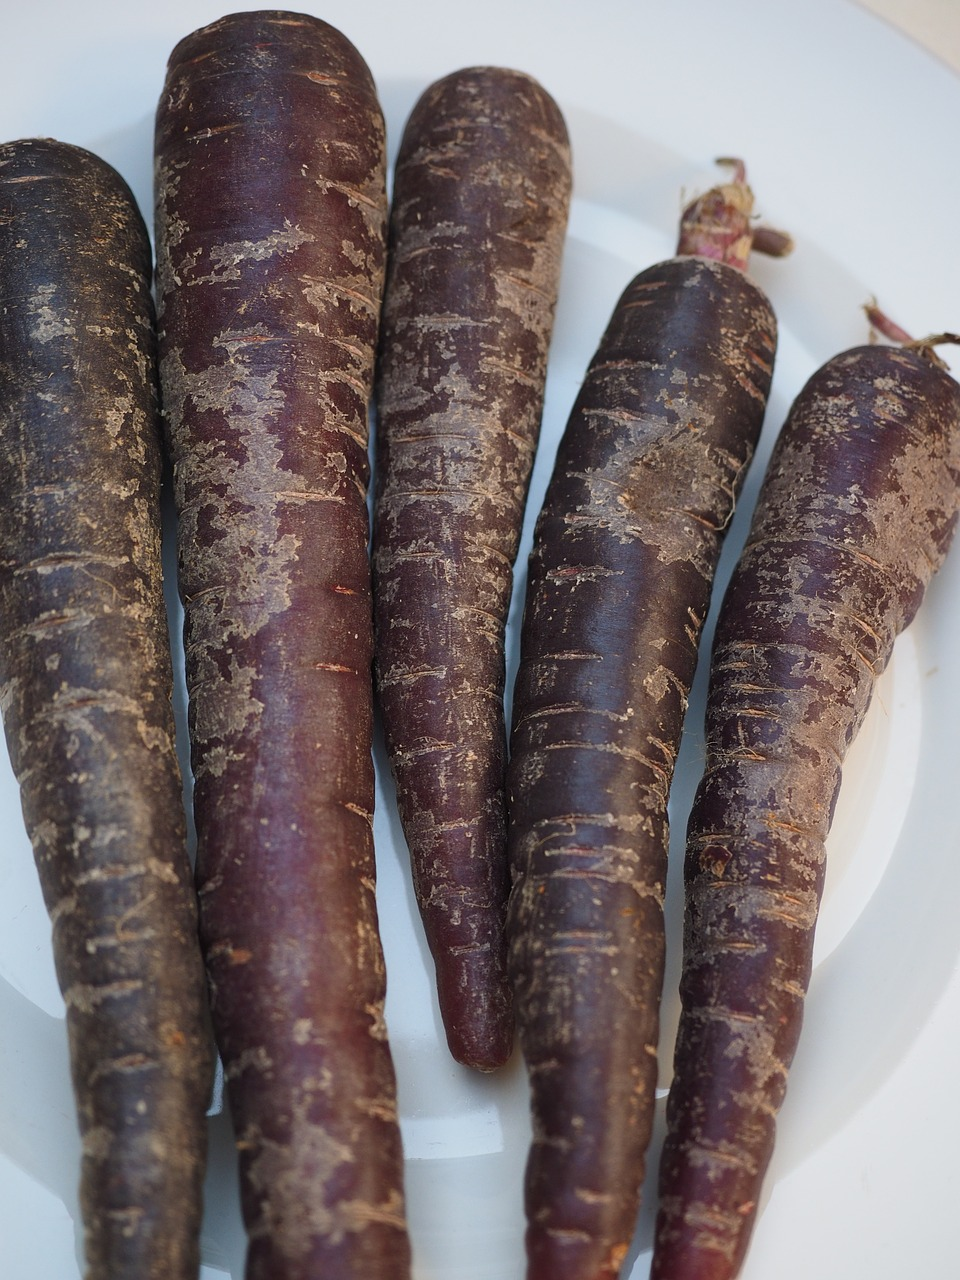 carrots red carrots purple free photo